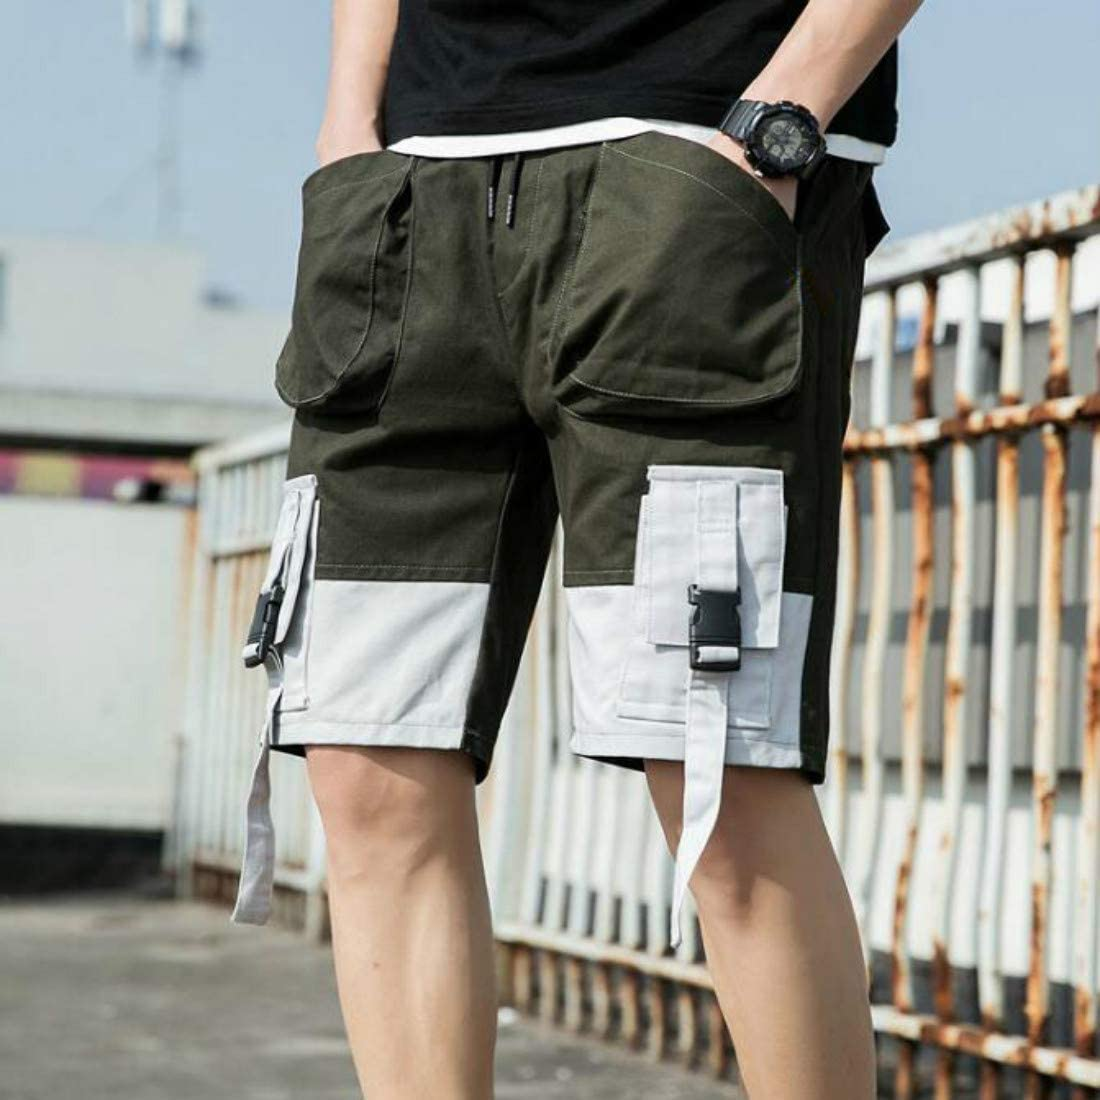 ZPAYFSDS Mens Lightweight Multi Pocket Casual Cargo Shorts Streetwear Shorts Army Green S-L